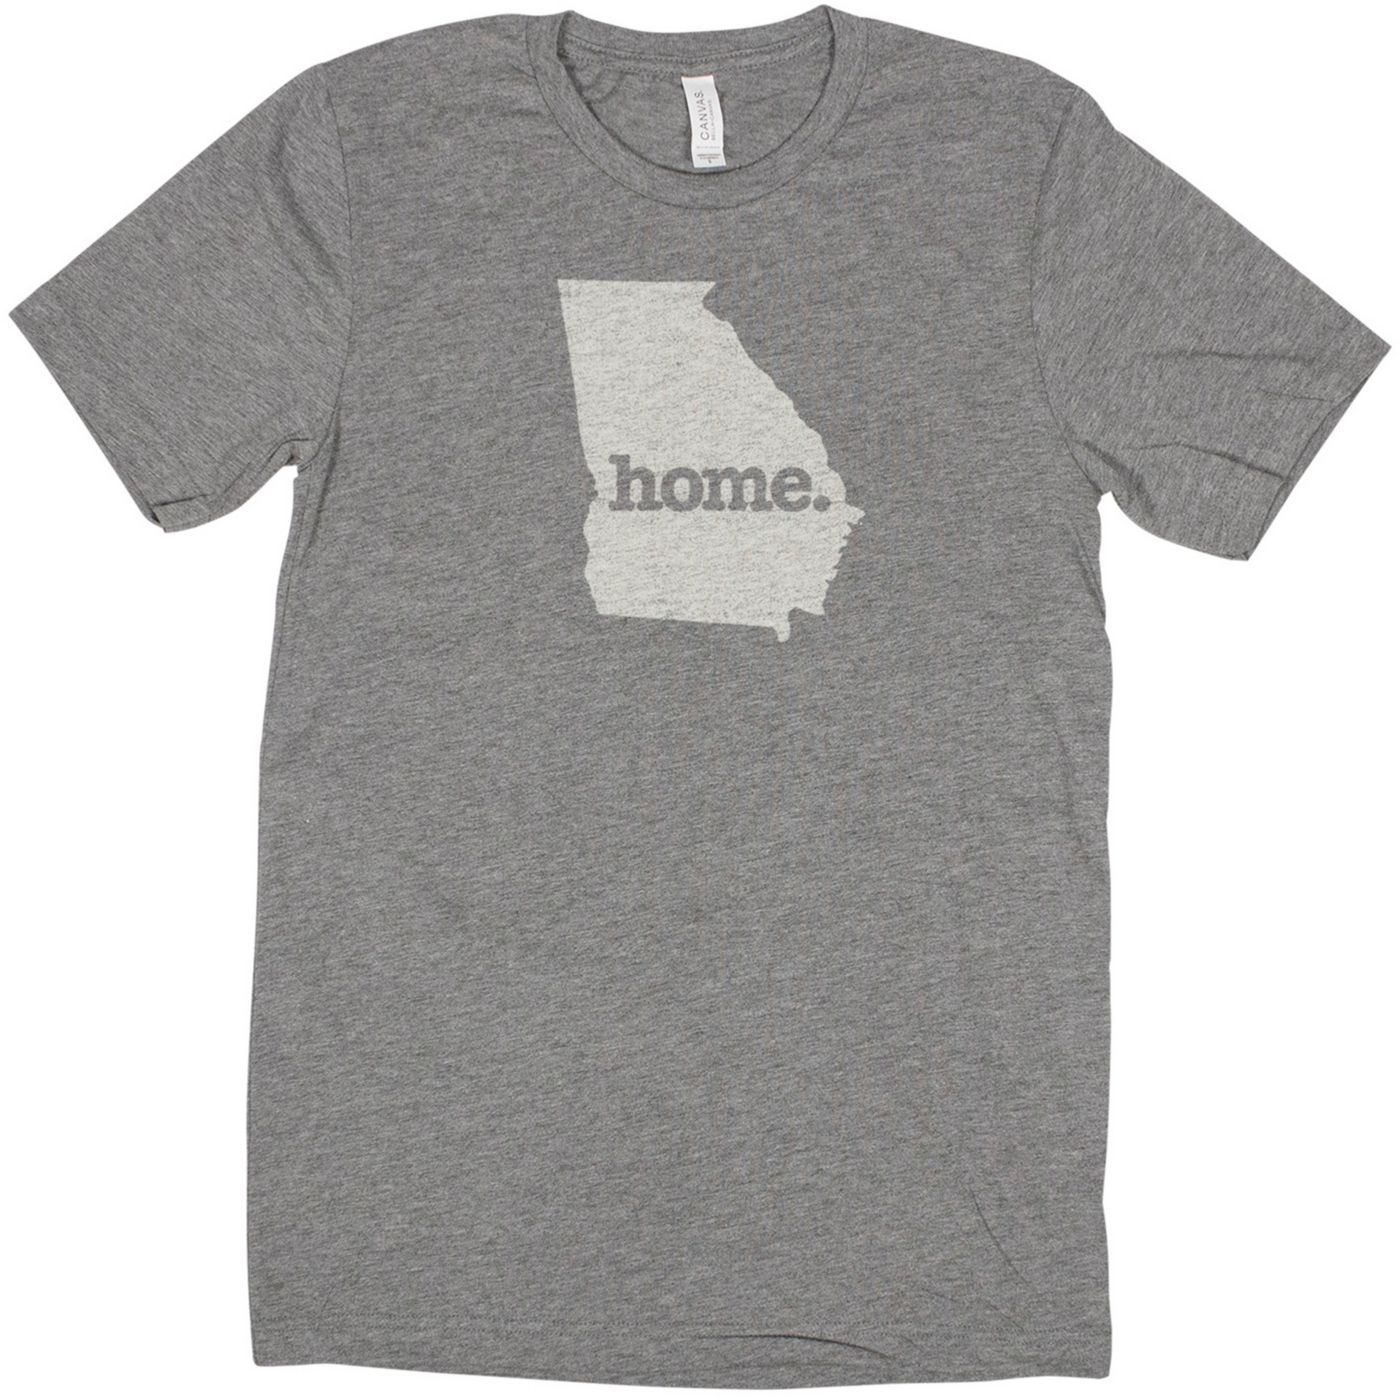 Home State Apparel Men's Home State Georgia Short Sleeve T-Shirt